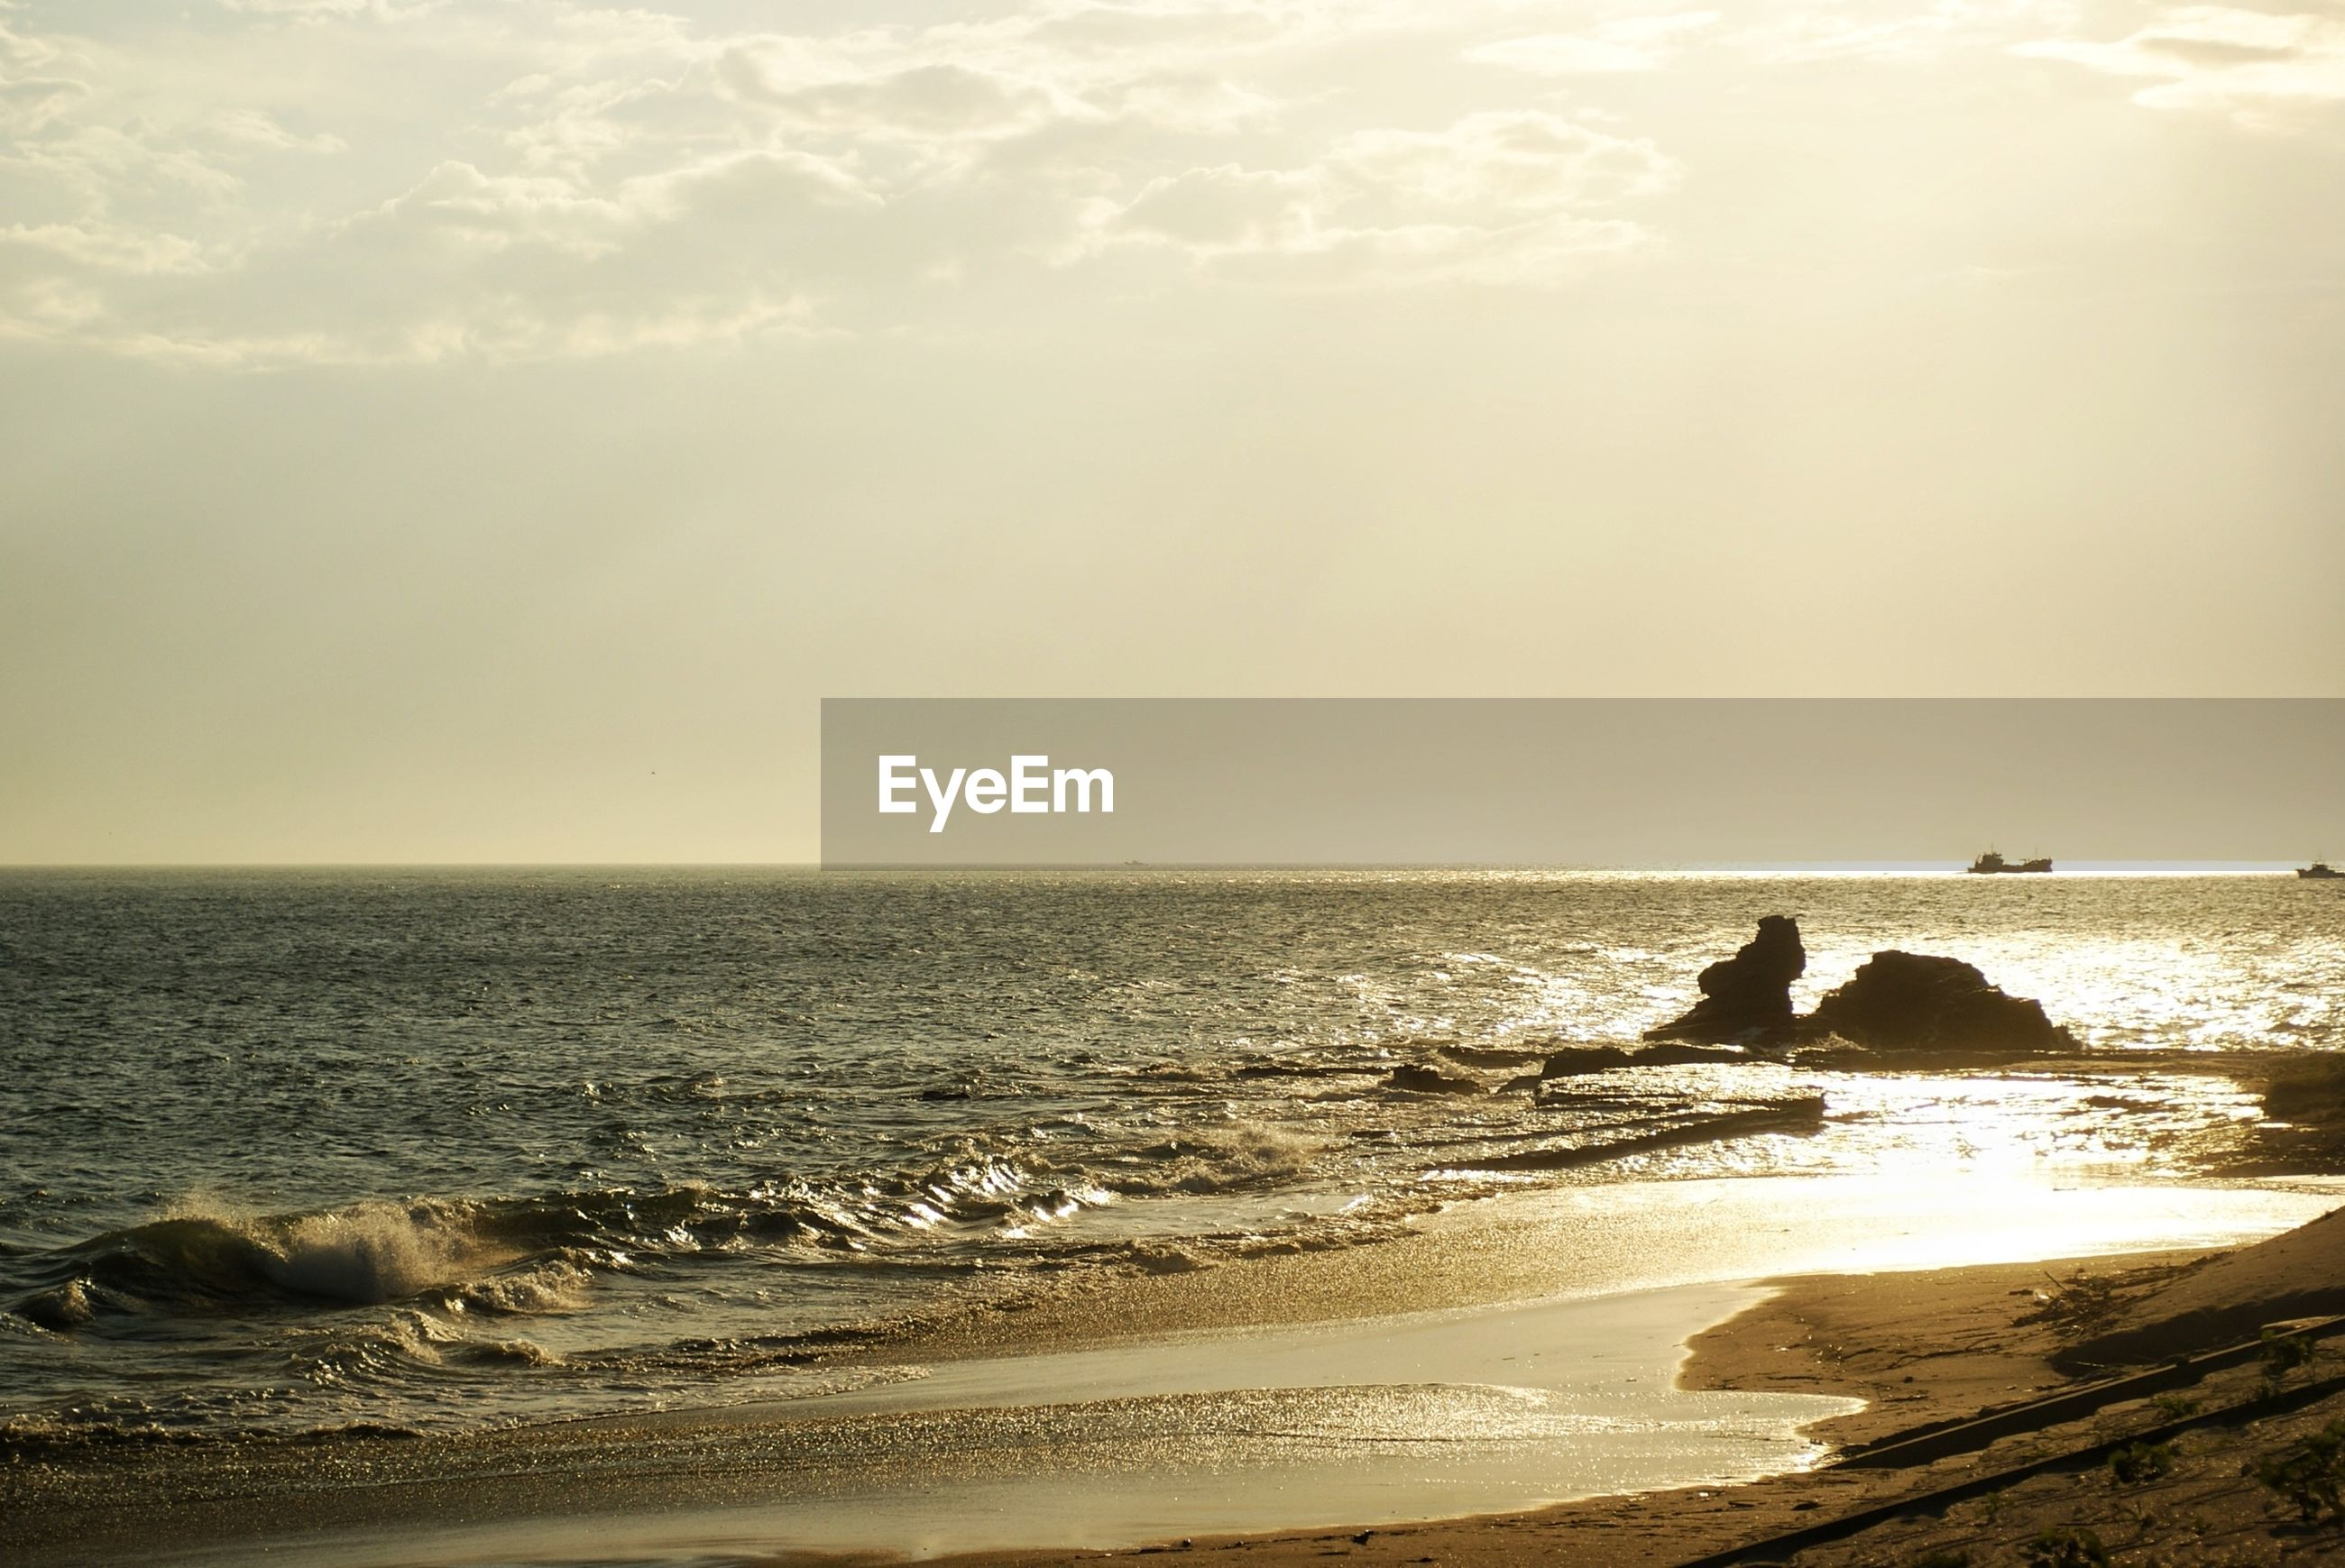 sea, horizon over water, water, beach, scenics, shore, tranquil scene, beauty in nature, sky, tranquility, nature, wave, sunset, idyllic, rock - object, sand, coastline, vacations, incidental people